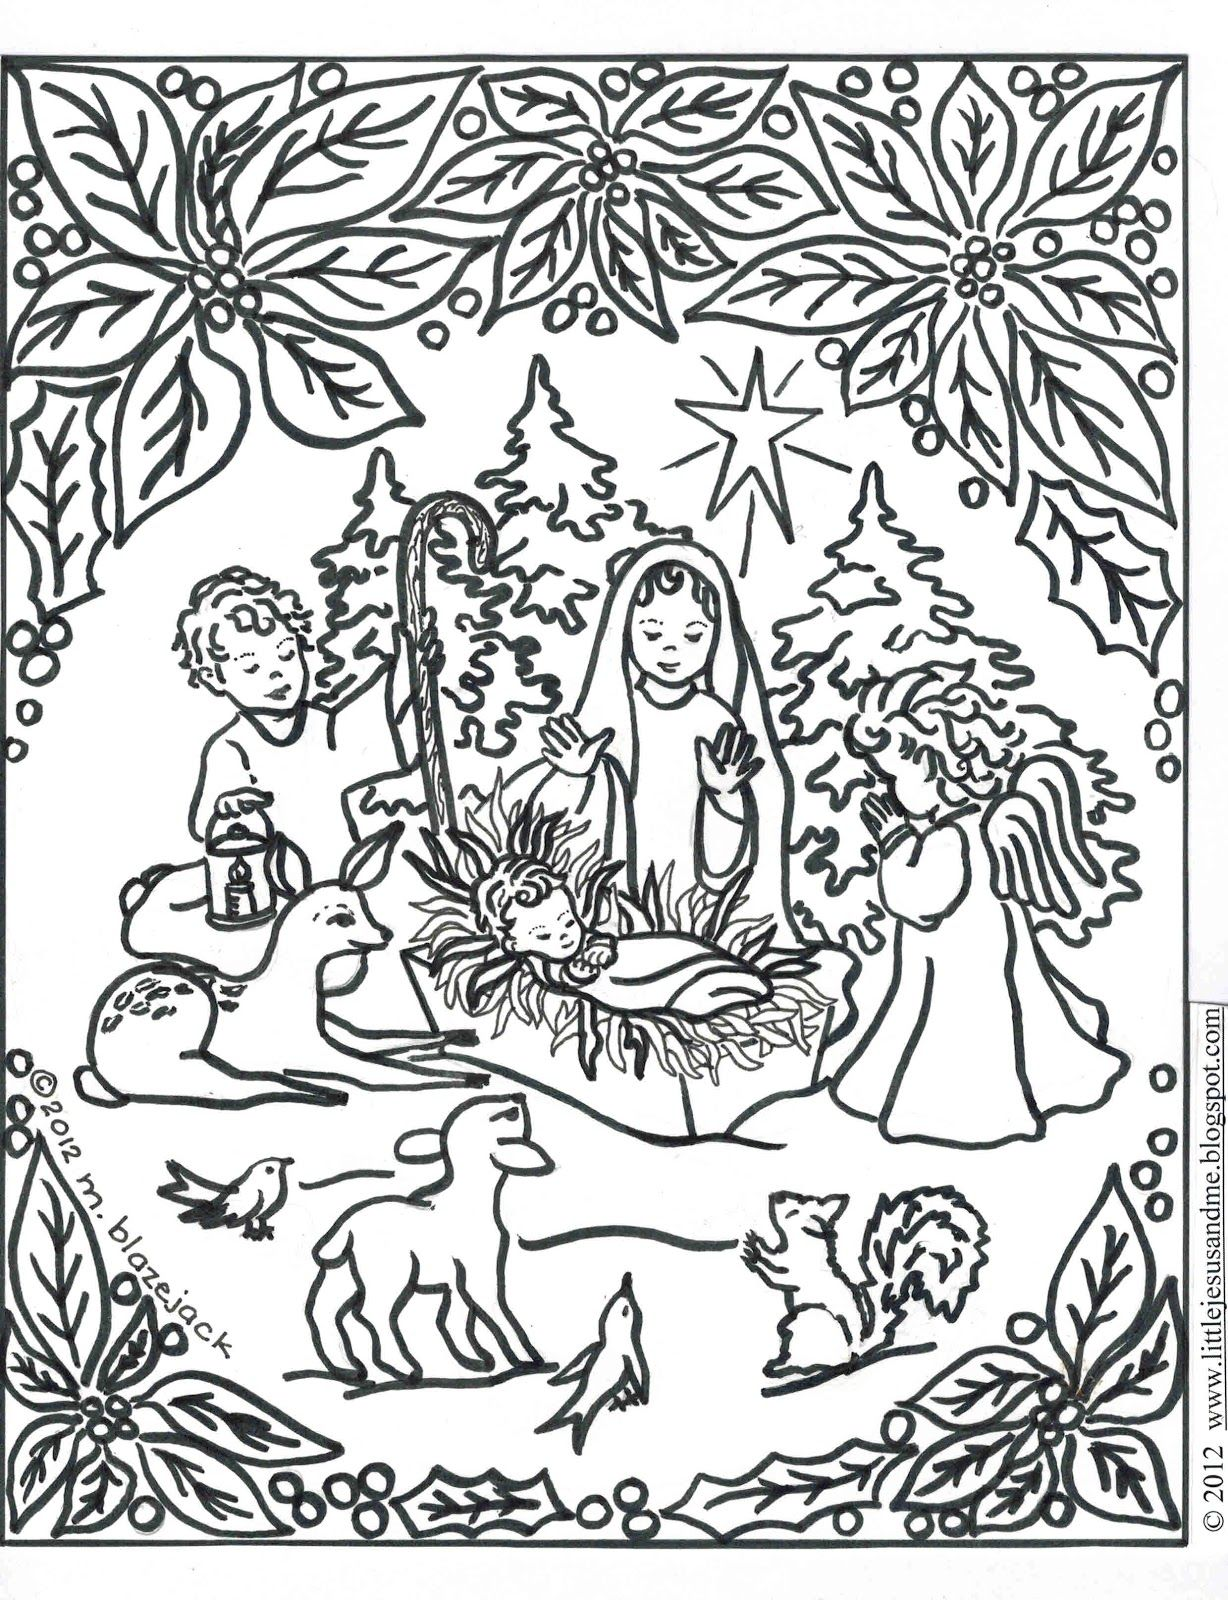 Christmas Nativity Animals Coloring Pages - Coloring Pages For All ...